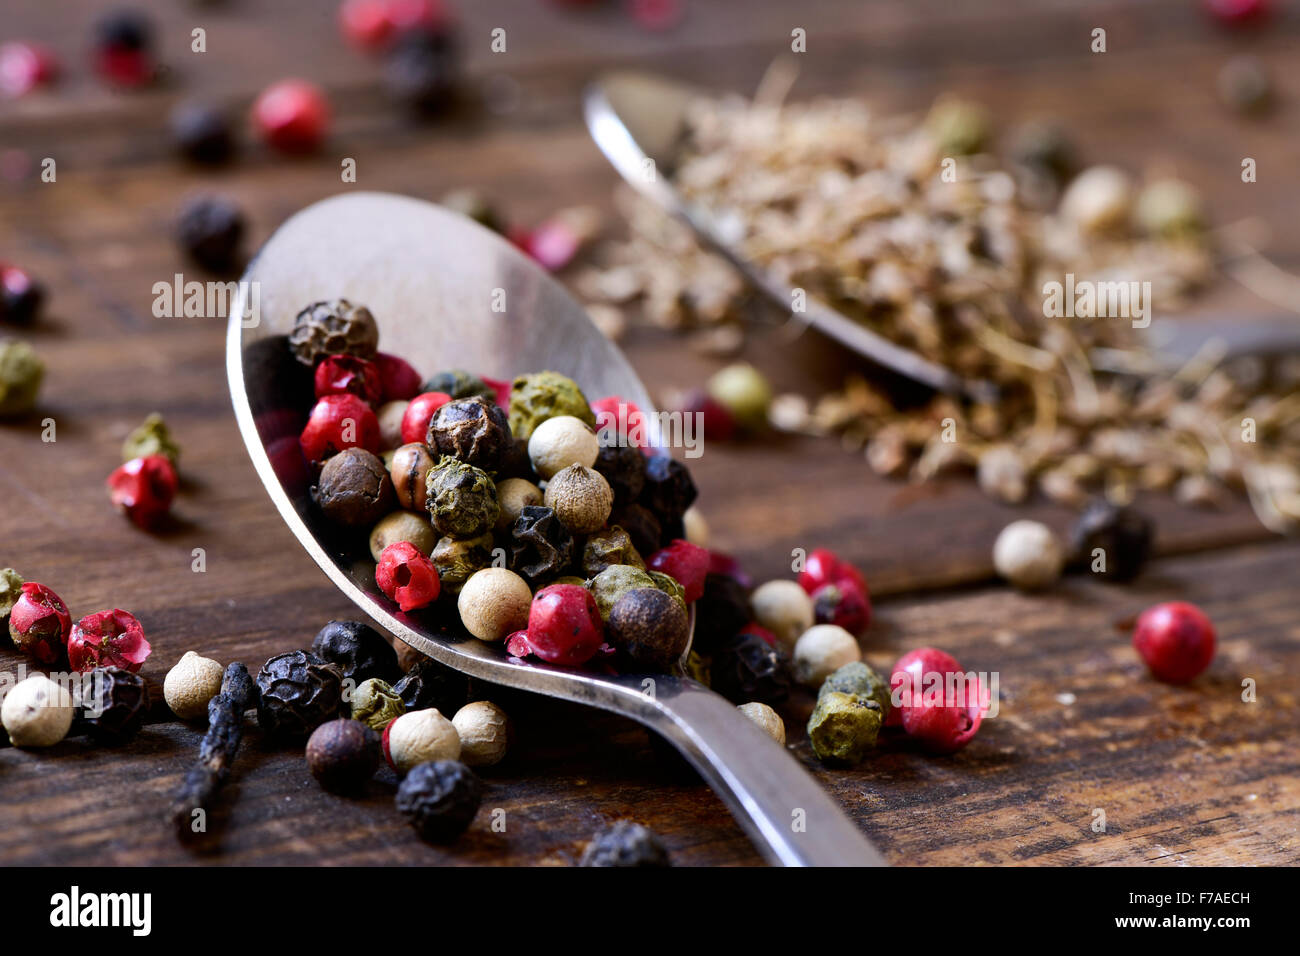 closeup of a spoon with a variety of different peppercorns, such as pink pepper, black pepper, red pepper or white - Stock Image